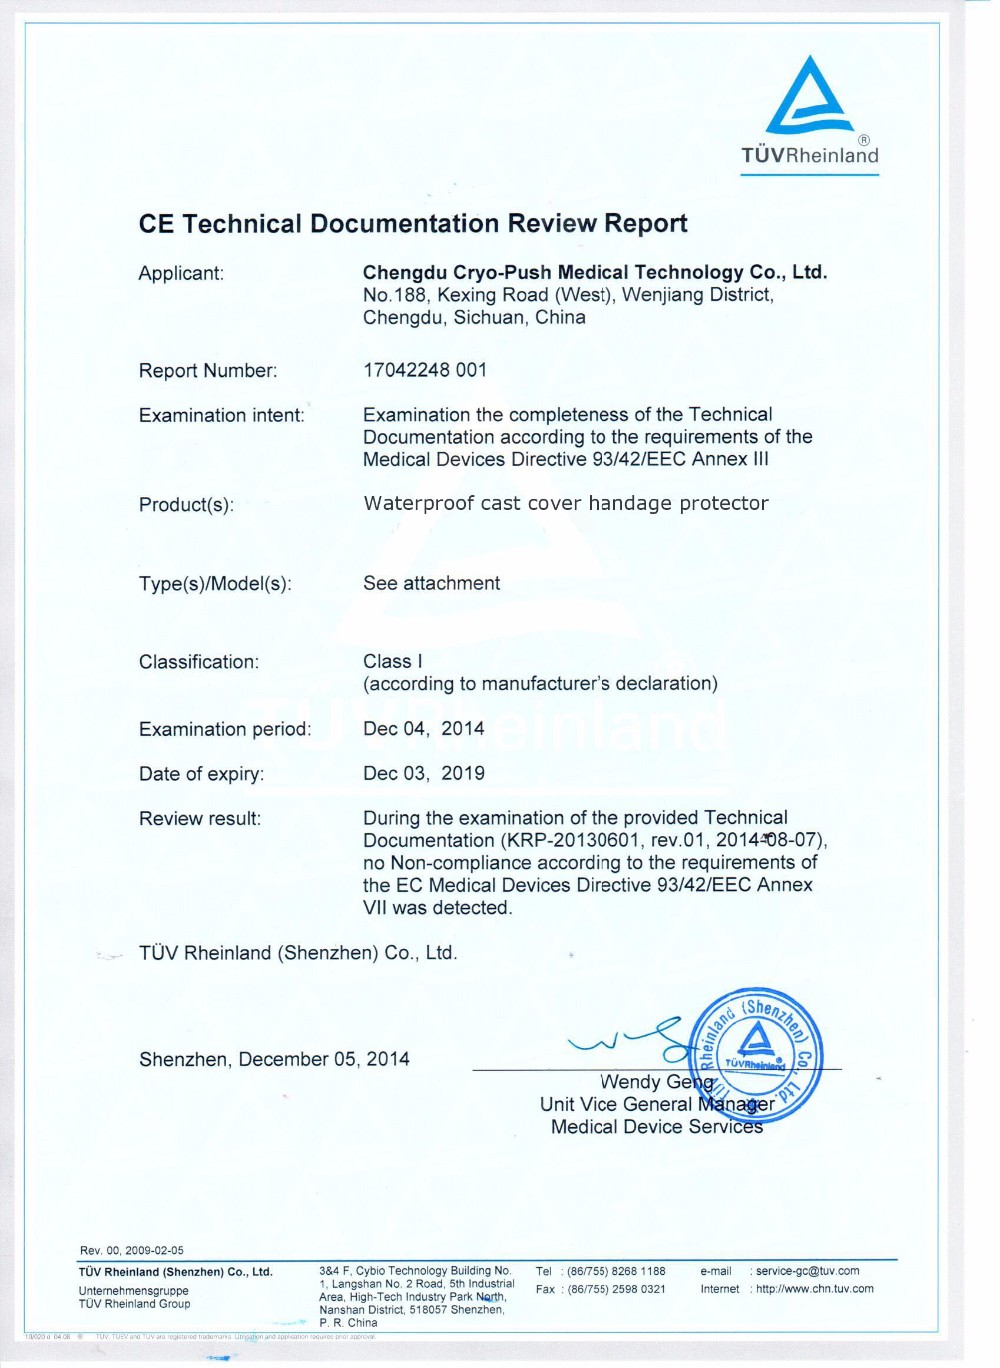 CE Certificate of cast cover